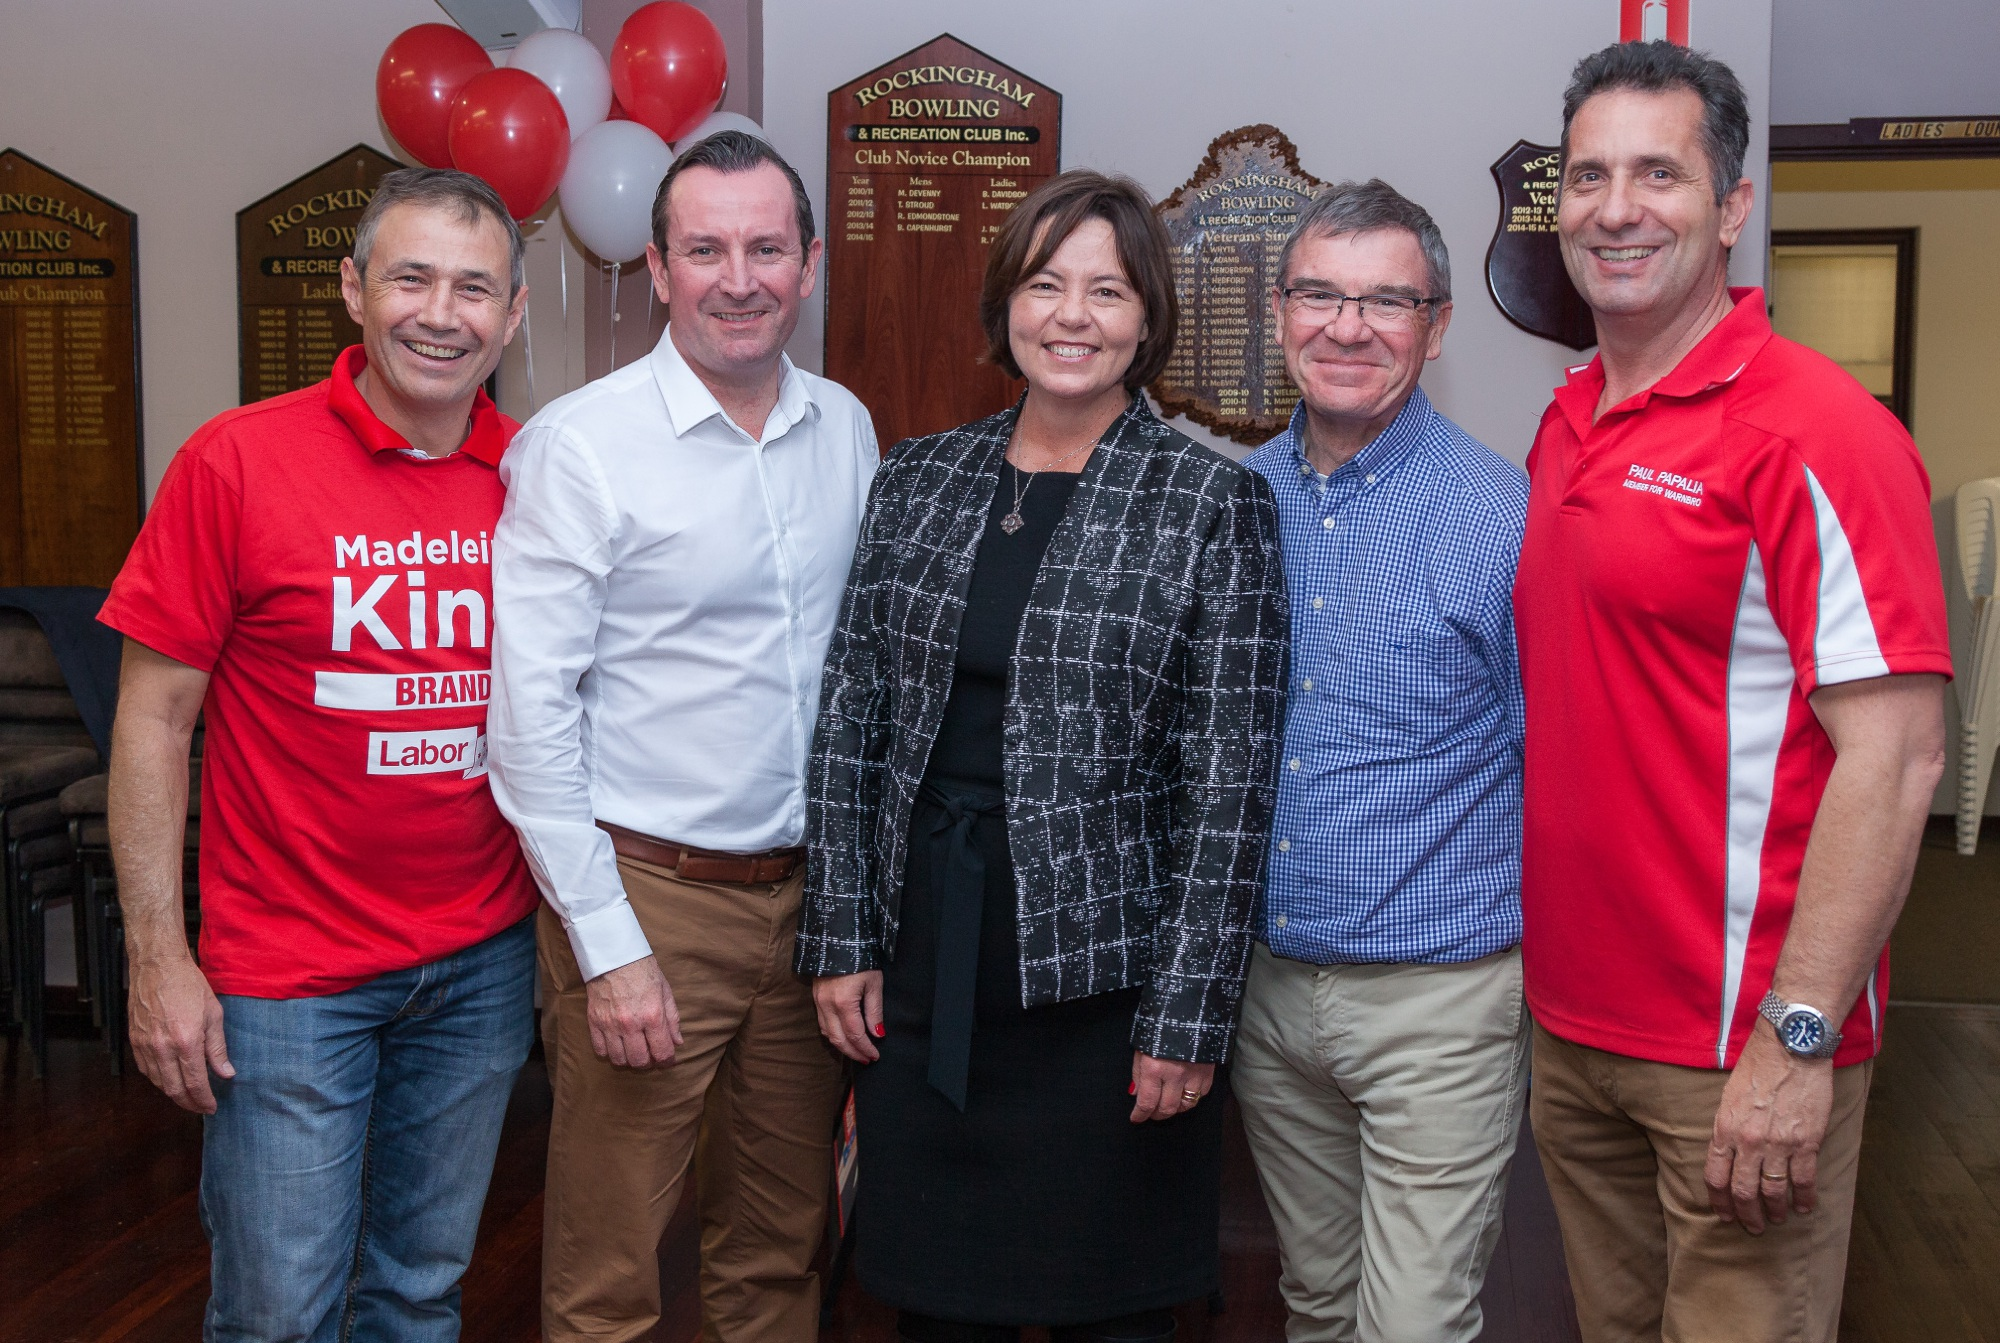 WA Member for Kwinana Roger Cook, State Opposition Leader Mark McGowan, newly elected Labor representative for Brand Madeleine King, retired MP Gary Gray and WA Member for Warnbro Paul Papalia celebrate Saturday's result.